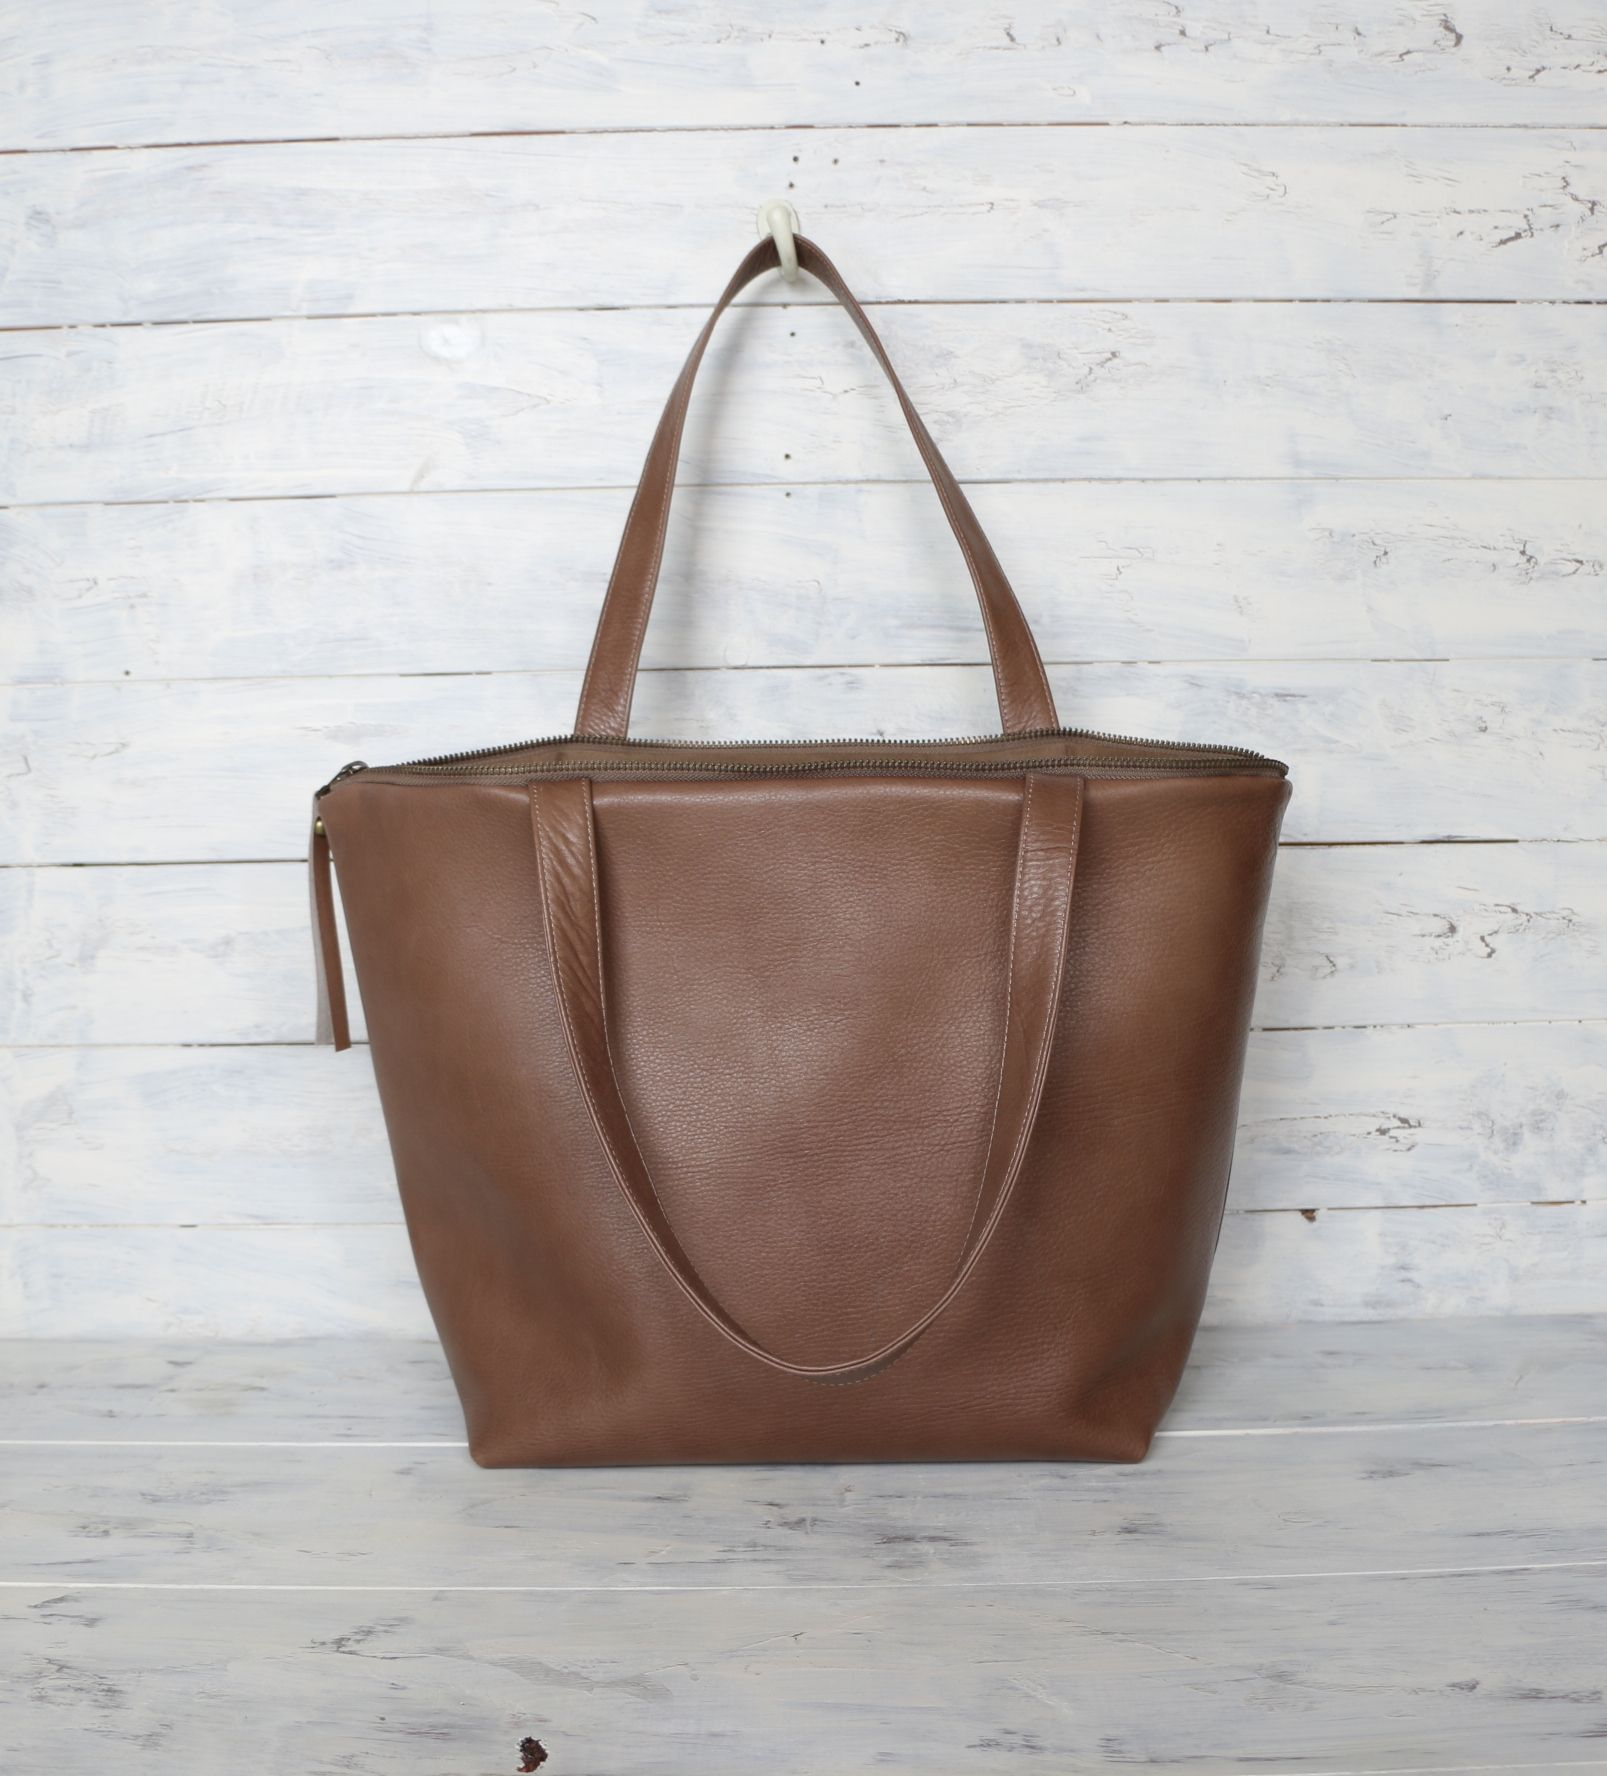 New /// Large size Beautiful Brown Leather Tote Bag  This Leather tote bag is made of Very soft & Supple beautiful Brown Cow Leather . Fully lined with thick Khaki Brown canvas with 4 large open pockets and one small zipper pocket. Top Zipper closure with leather zipper pull. This Beautiful Leather Tote Bag is Roomy enough for all your daily essentials and would work great all year round. The leather handles are strong enough to carry your laptop, Books and fit comfortably over your…